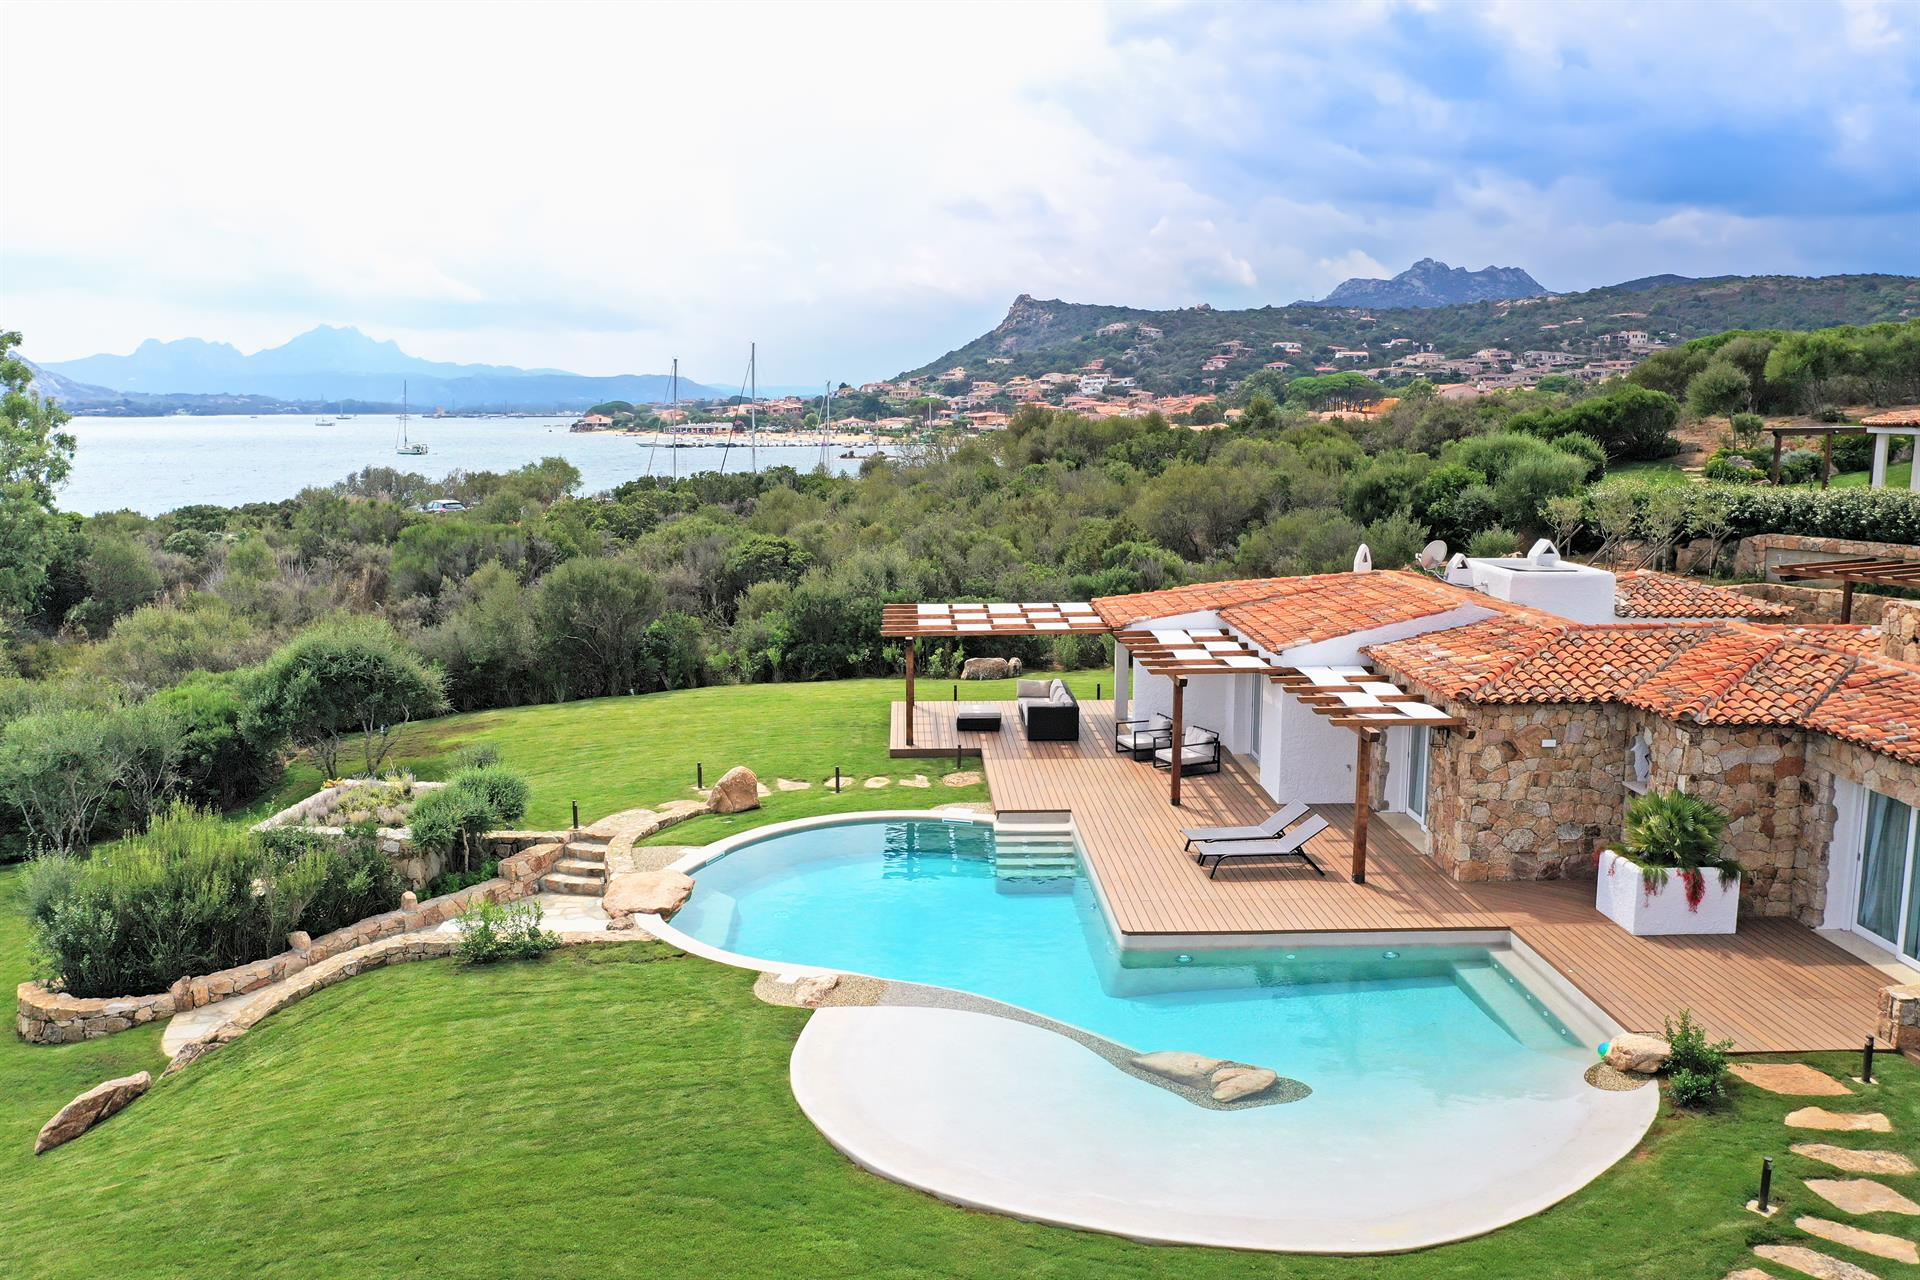 Additional photo for property listing at Villa Pieds dans l'Eau - Lot N6 - Borgo Harenae  Costa Smeralda, Olbia Tempio,07020 Italy